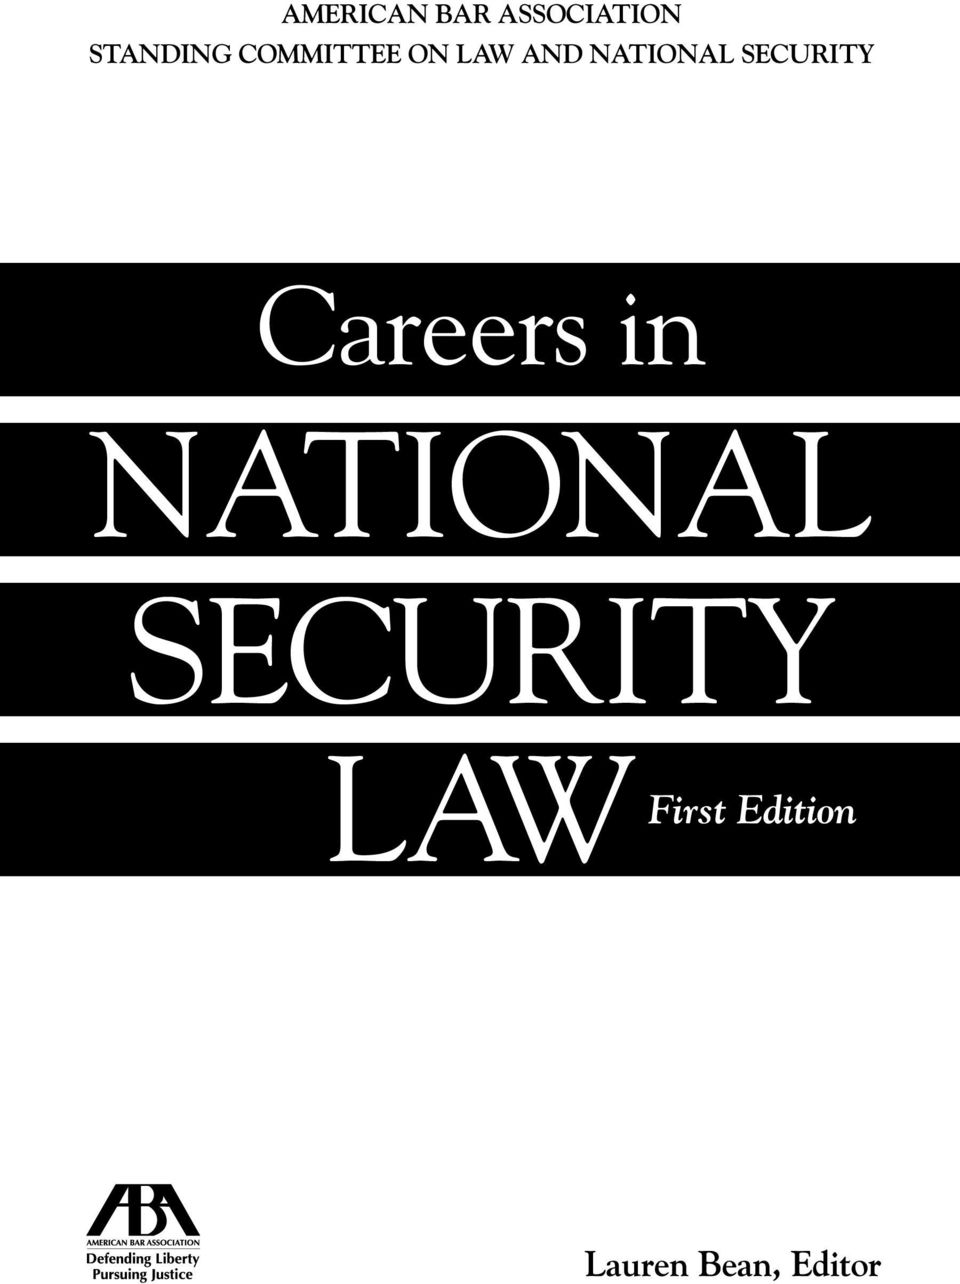 SECURITY Careers in NATIONAL